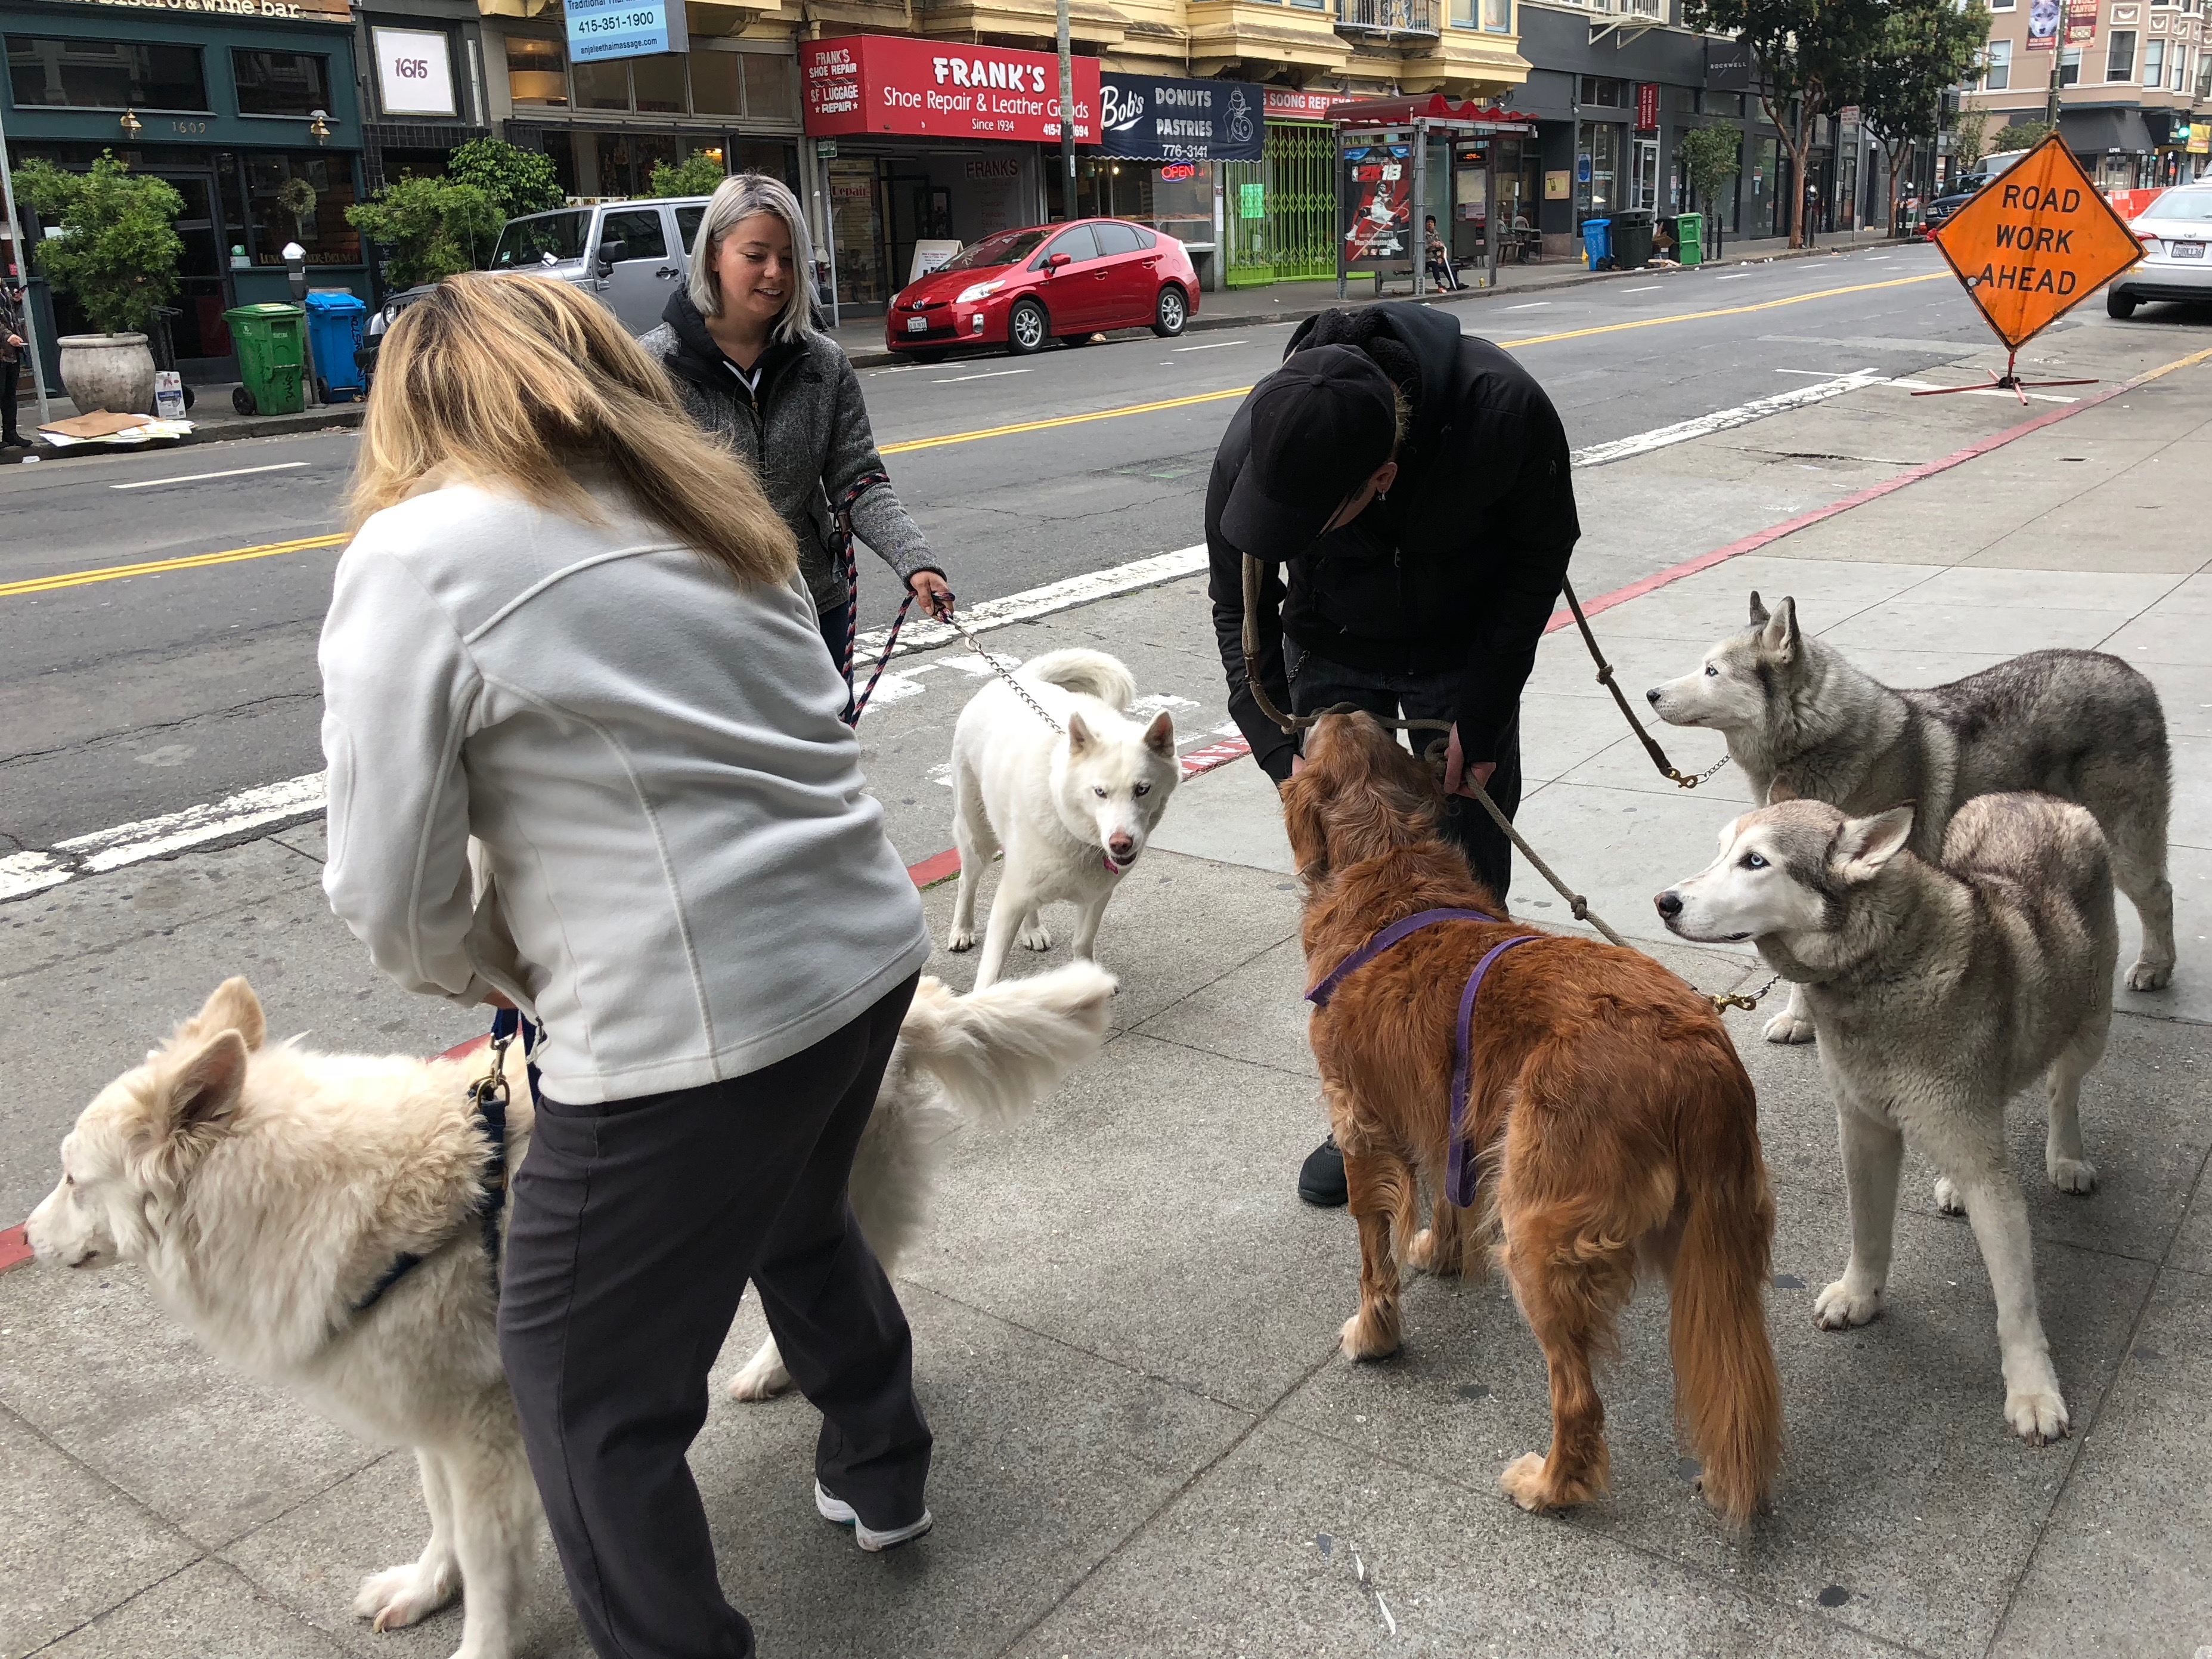 Four Huskies And A Golden Retriever Surrounding Three People